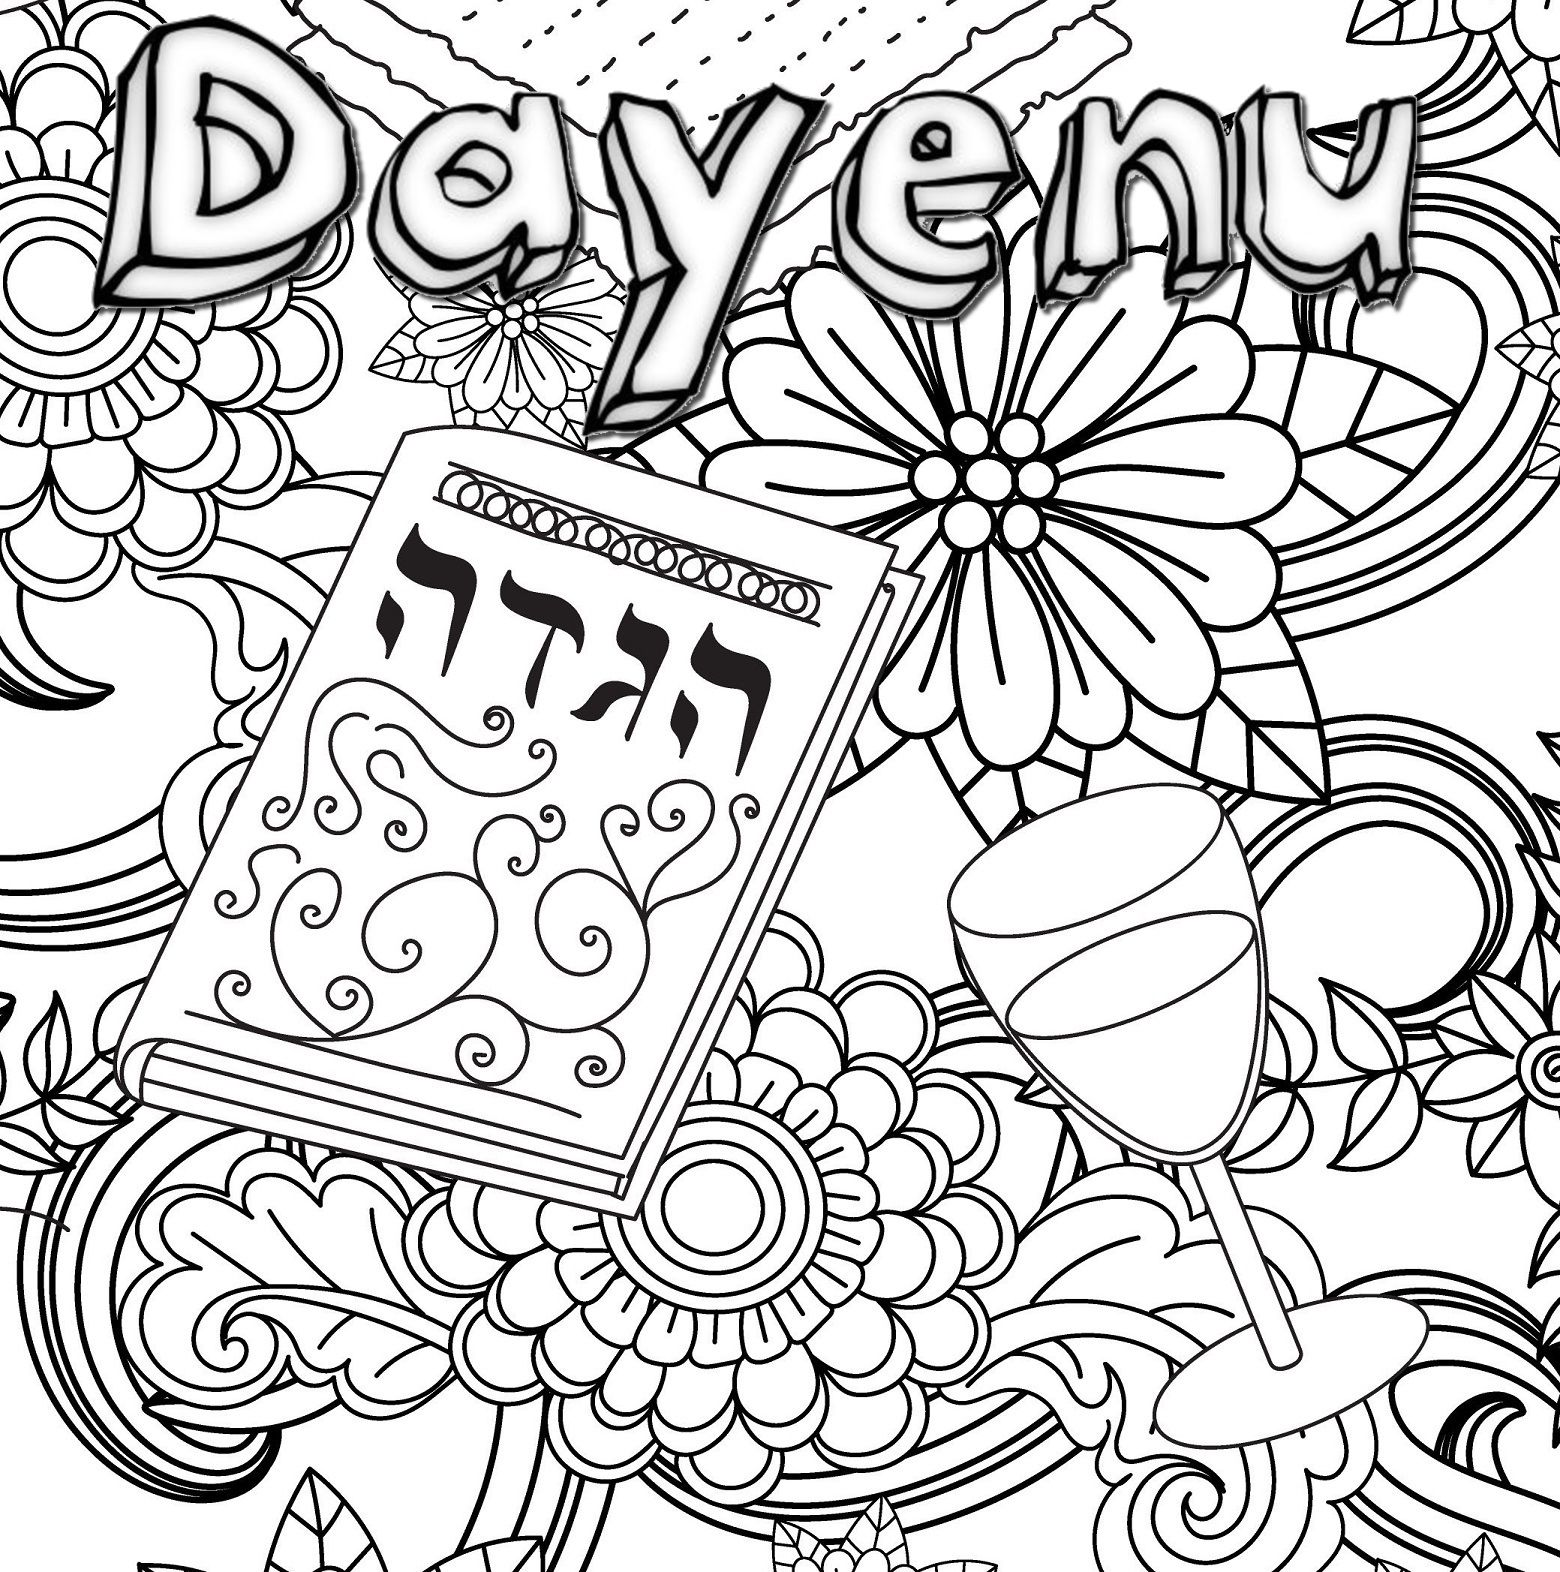 New Coloring Book For Passover Coloring Passover Phrases And Related Words For Adults And Teens Maror Chametz Words Coloring Book Coloring Books Word Design